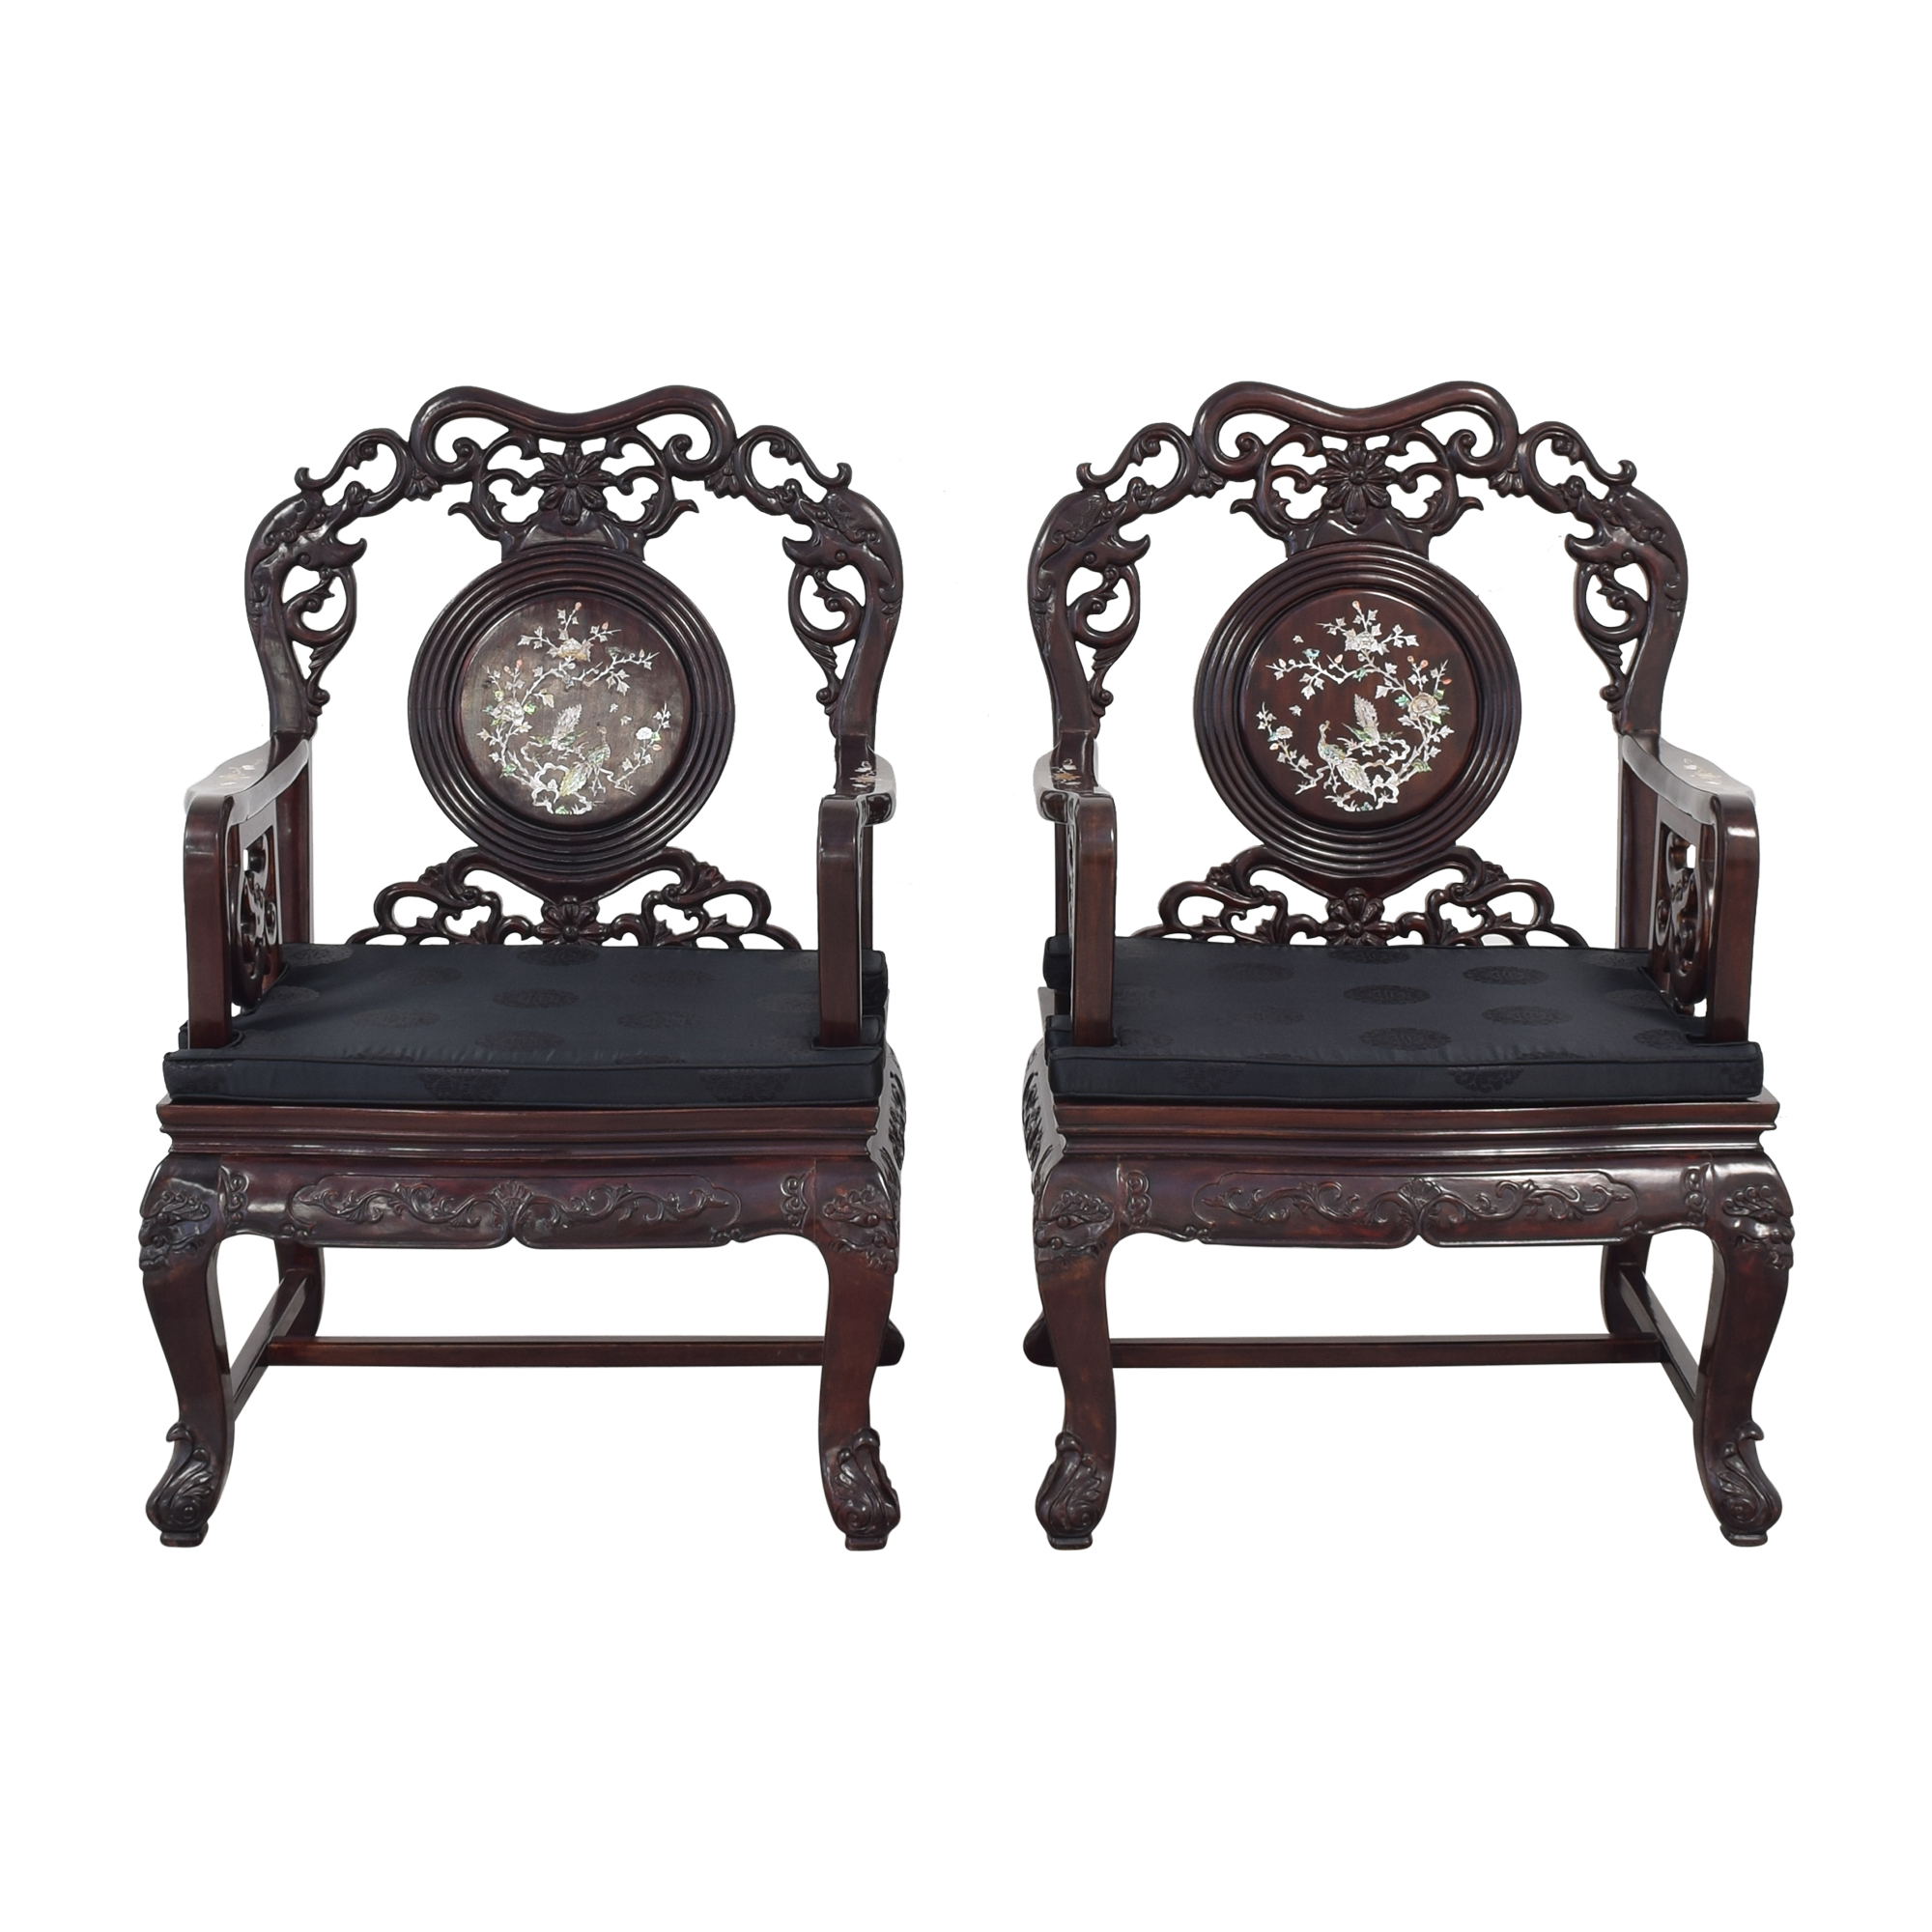 Upholstered Carved Chairs with Inlay / Chairs